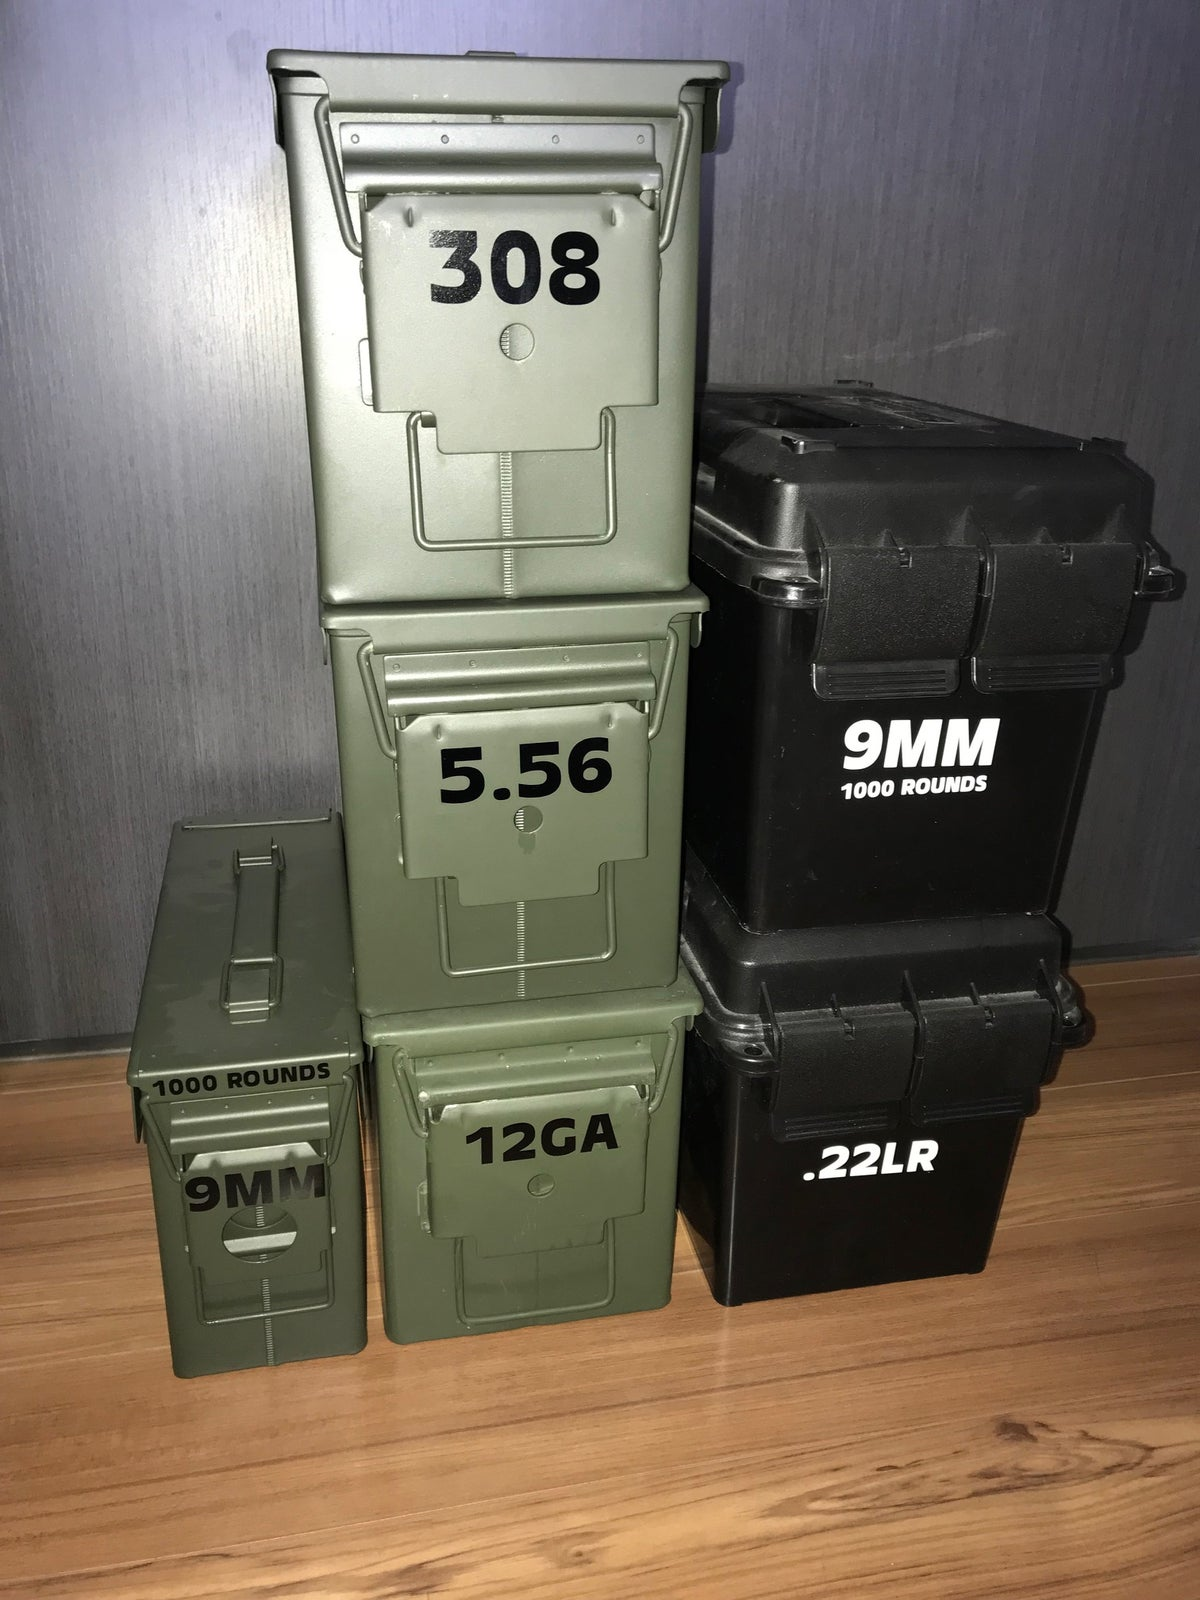 Ammo Can Caliber Identifier Decals